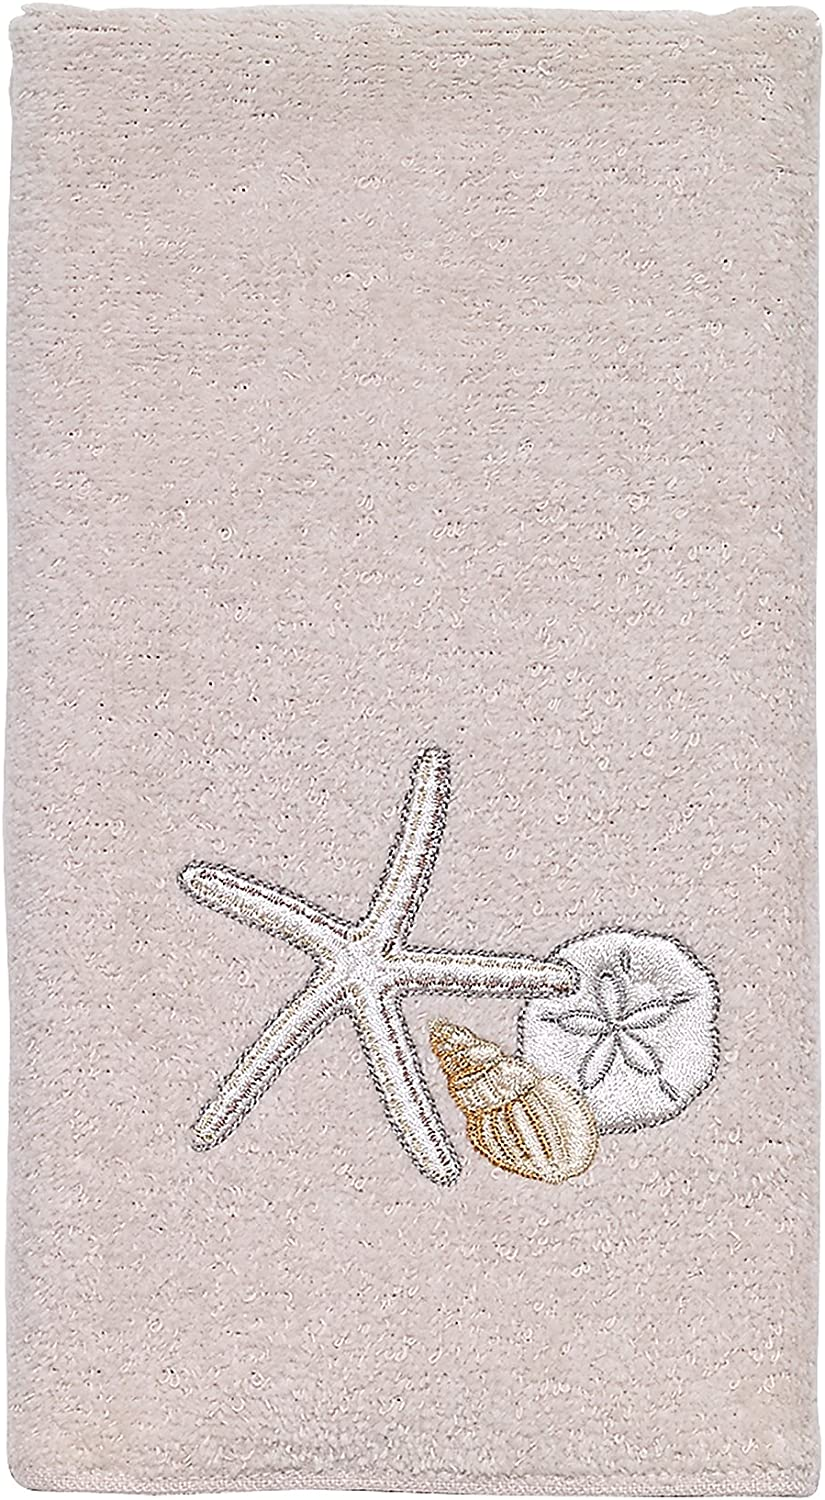 Avanti Linens Seaglass Collection Towel Factory outlet Fingertip 4 years warranty Embroidered